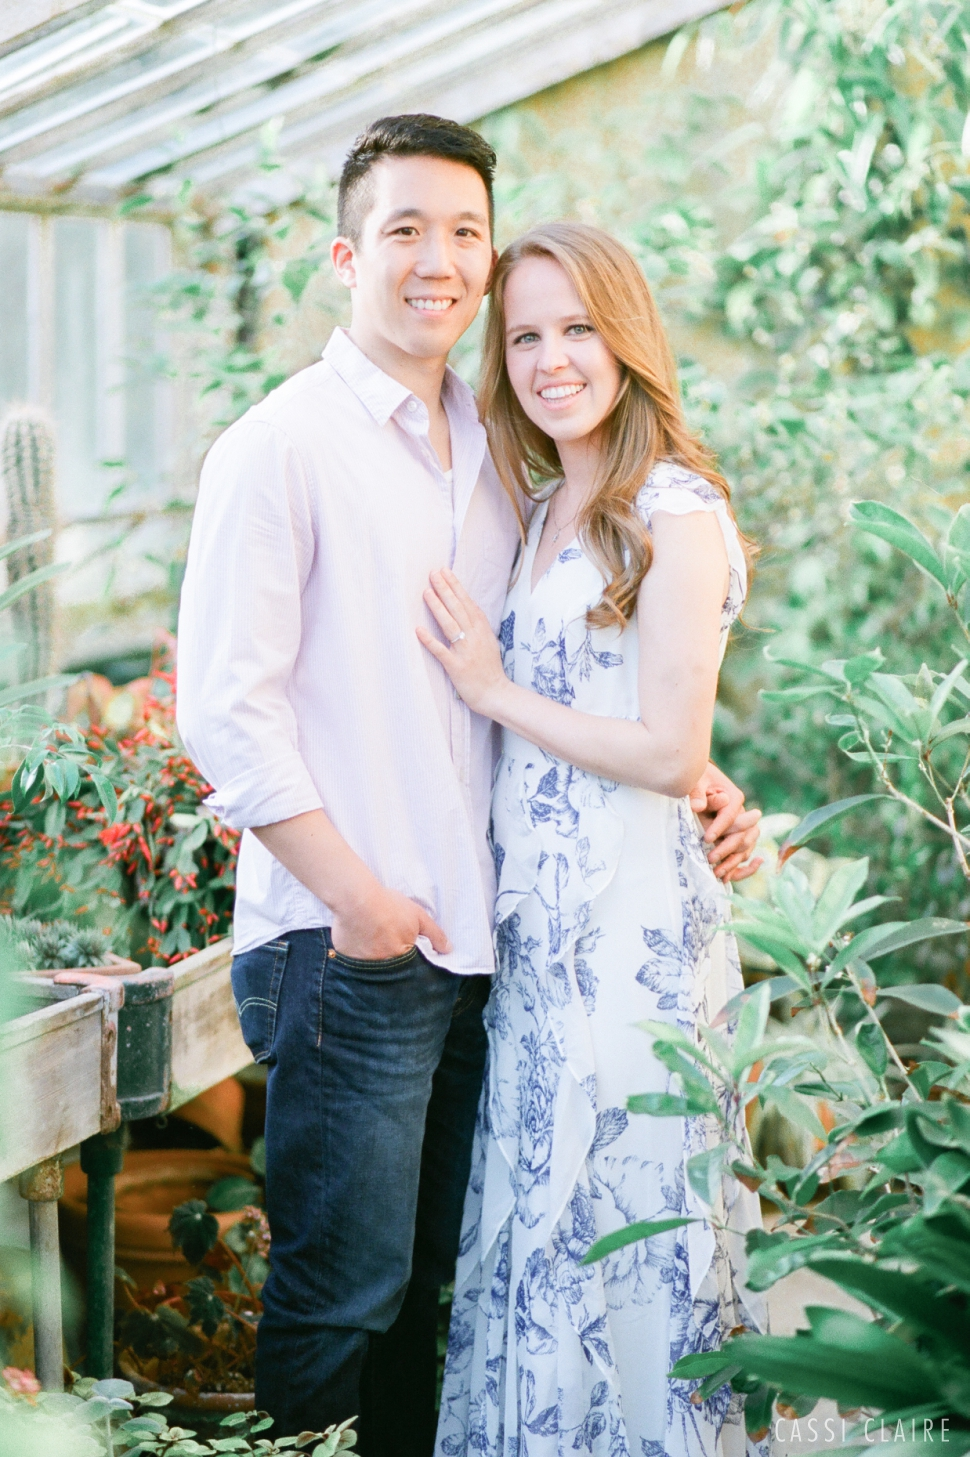 Willowwood-Arboretum-Engagement-Photos_03.jpg